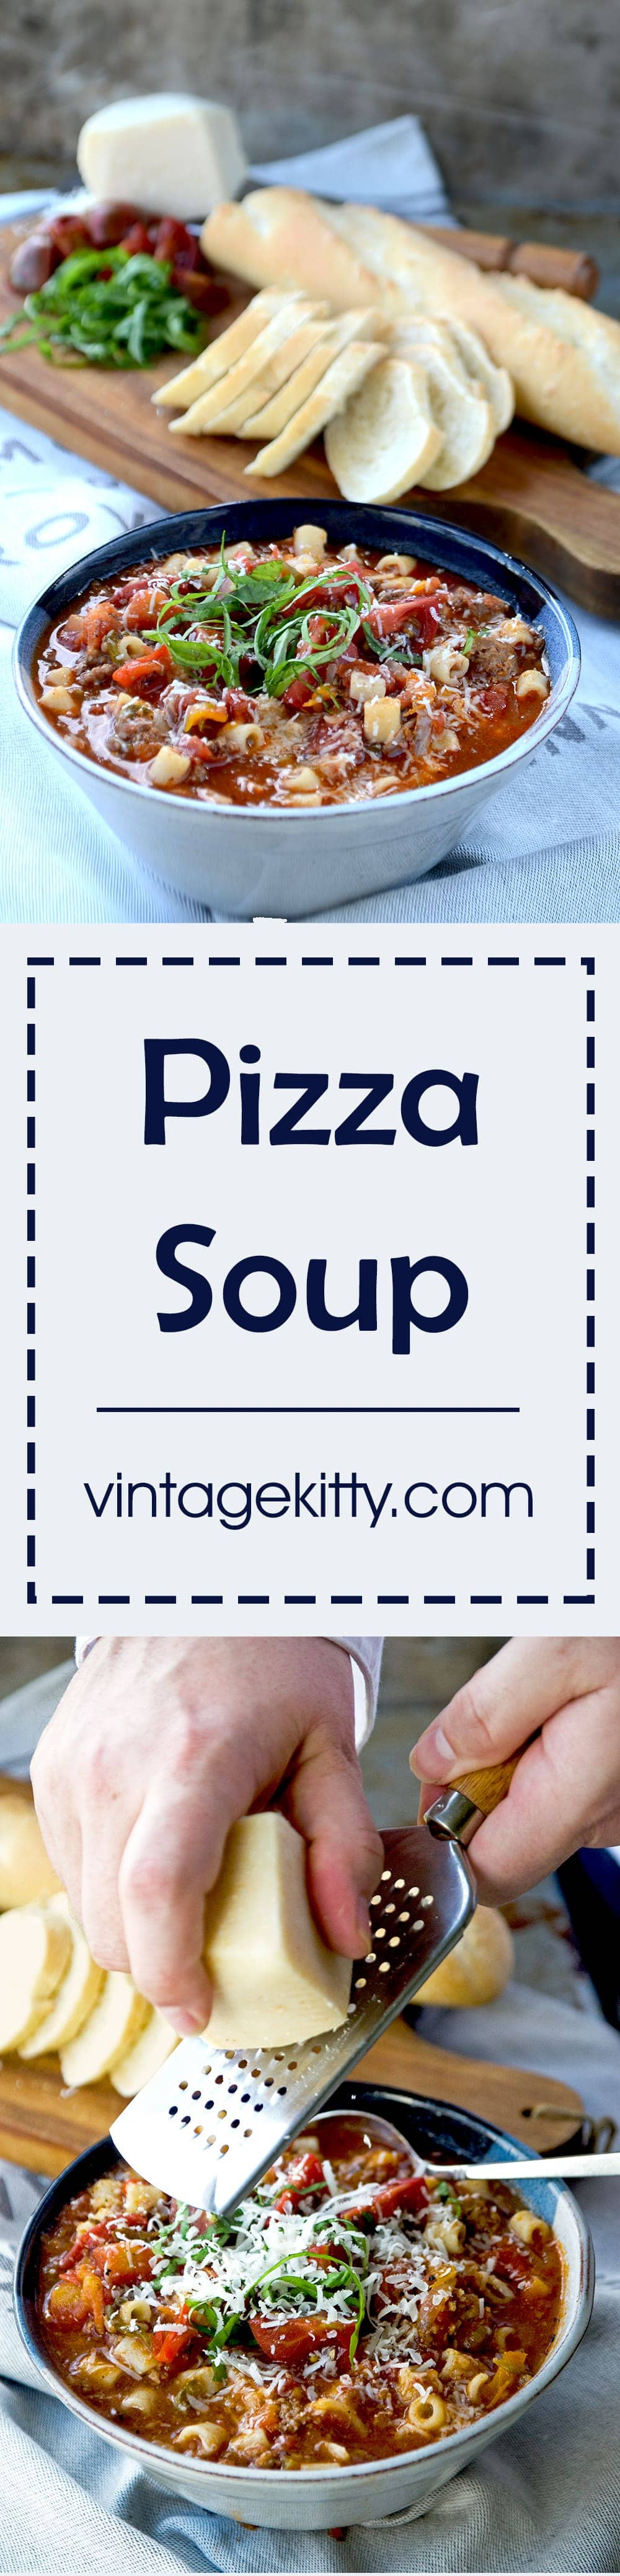 Pizza Soup is a hearty, robust tomato soup filled with Italian flavors and ingredients. It's supremely delicious and can be served as an appetizer or as an entree with a side salad or grilled cheese sandwich. | vintagekitty.com